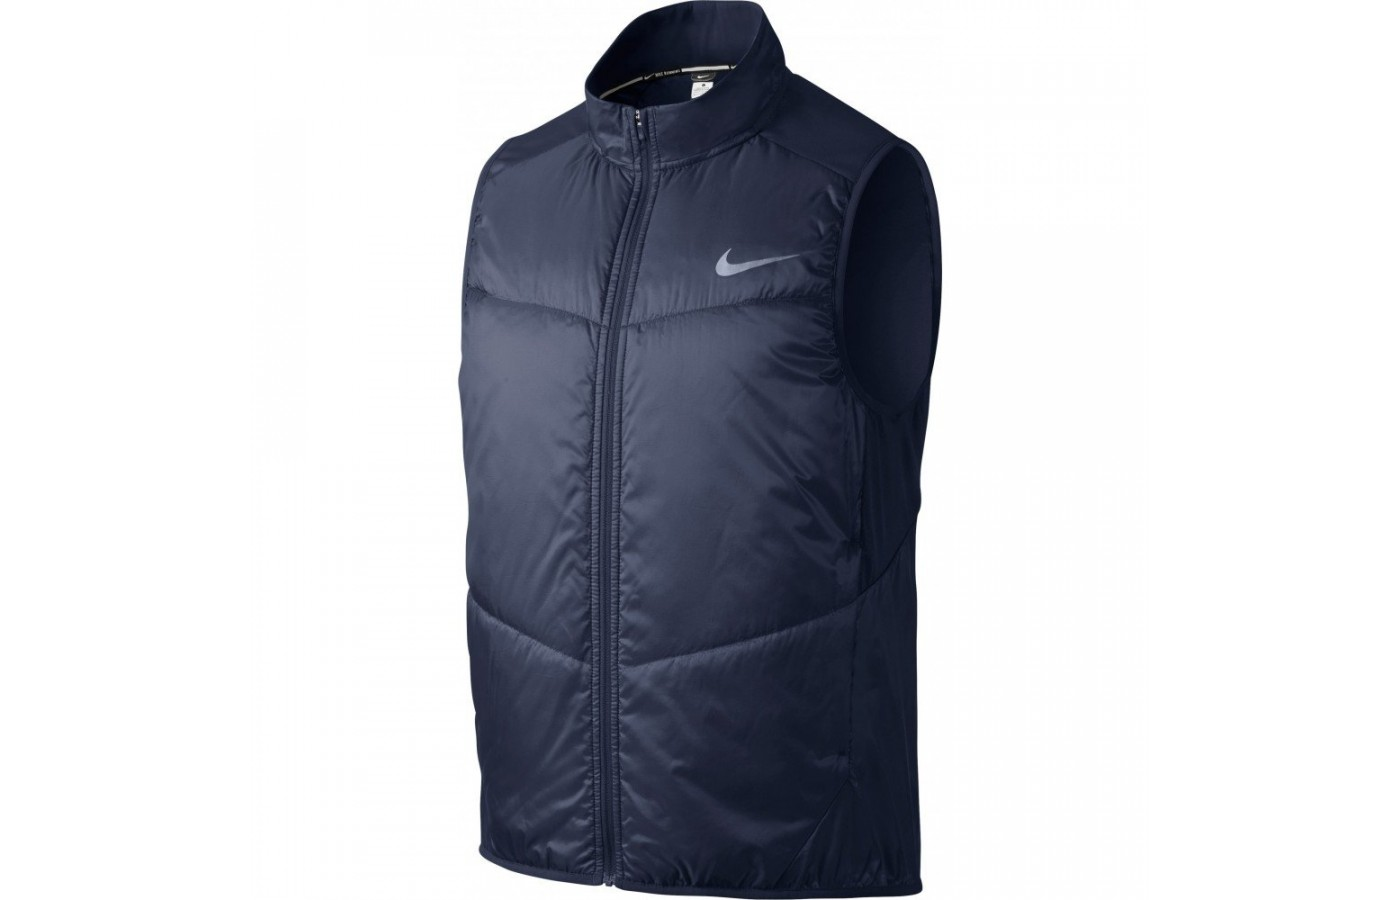 Nike Polyfill Vest front